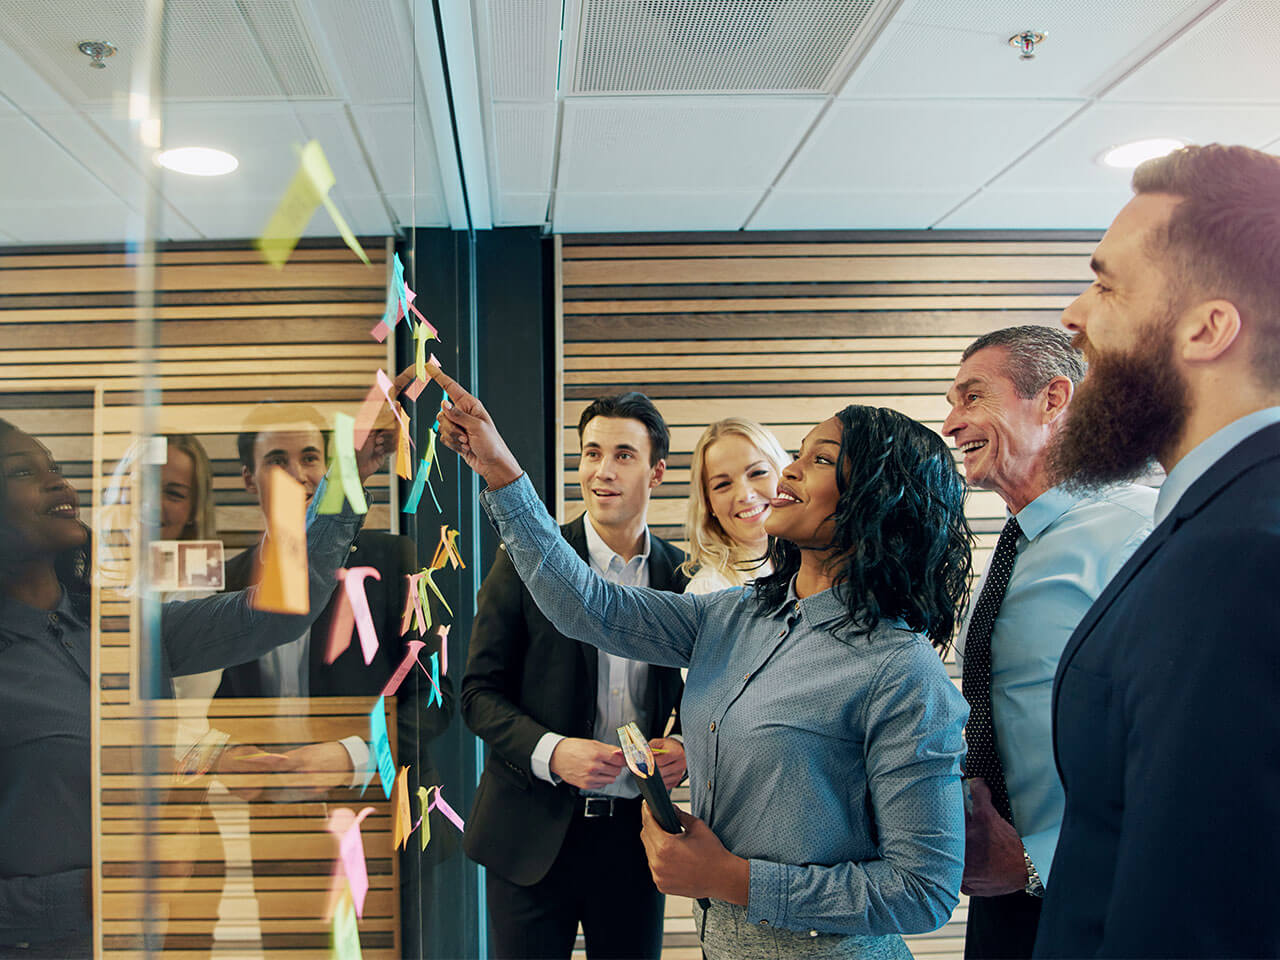 Colleagues putting sticky notes on glass wall